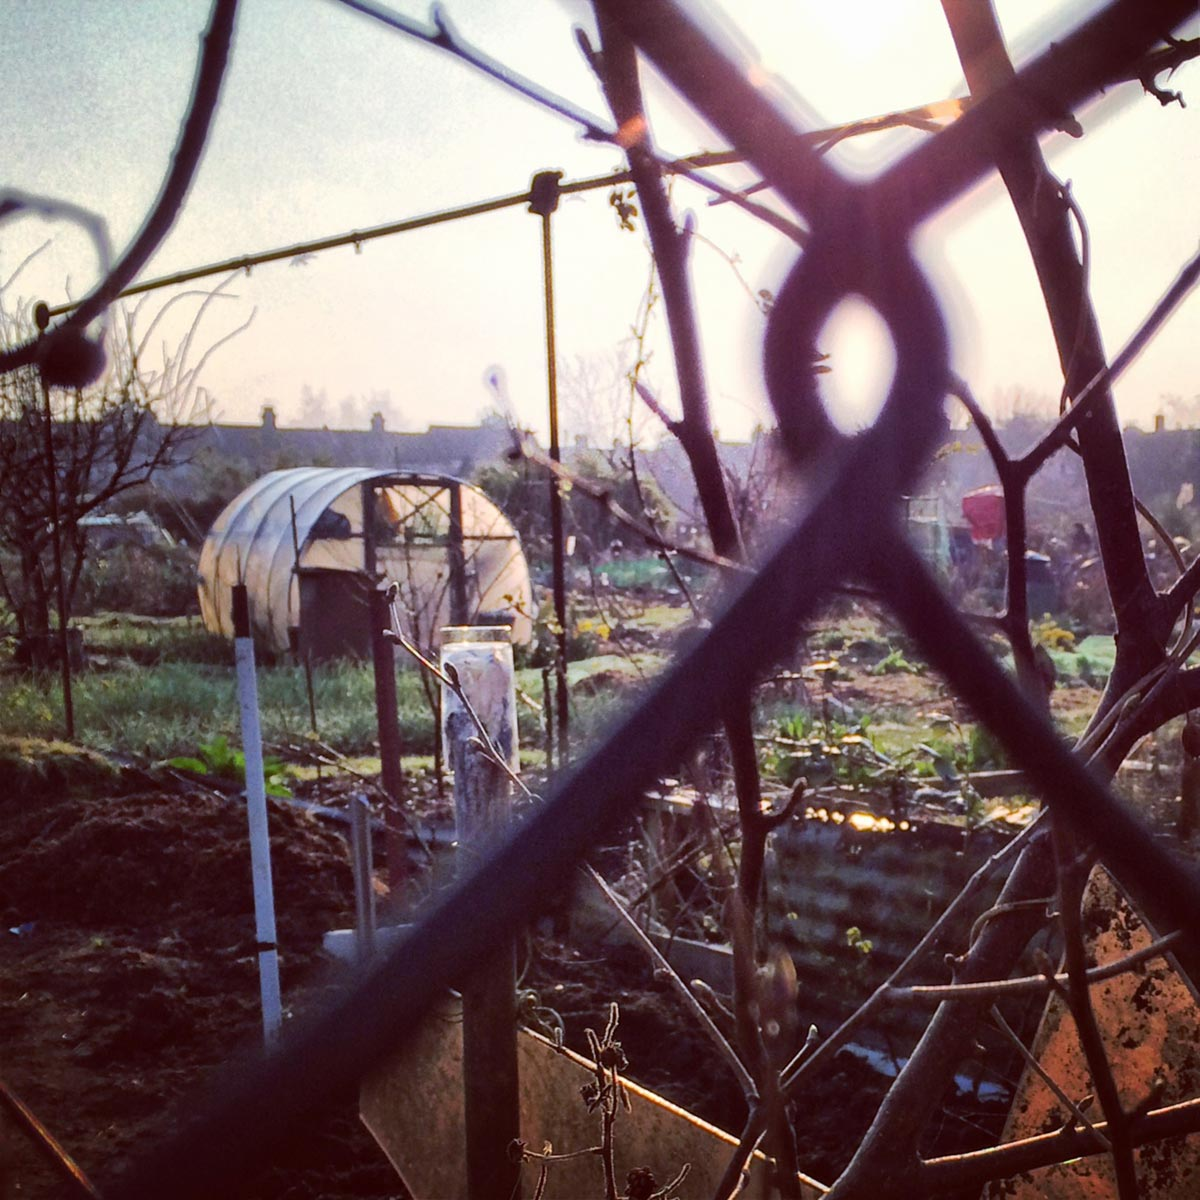 Higham Hill Allotment, Walthamstow